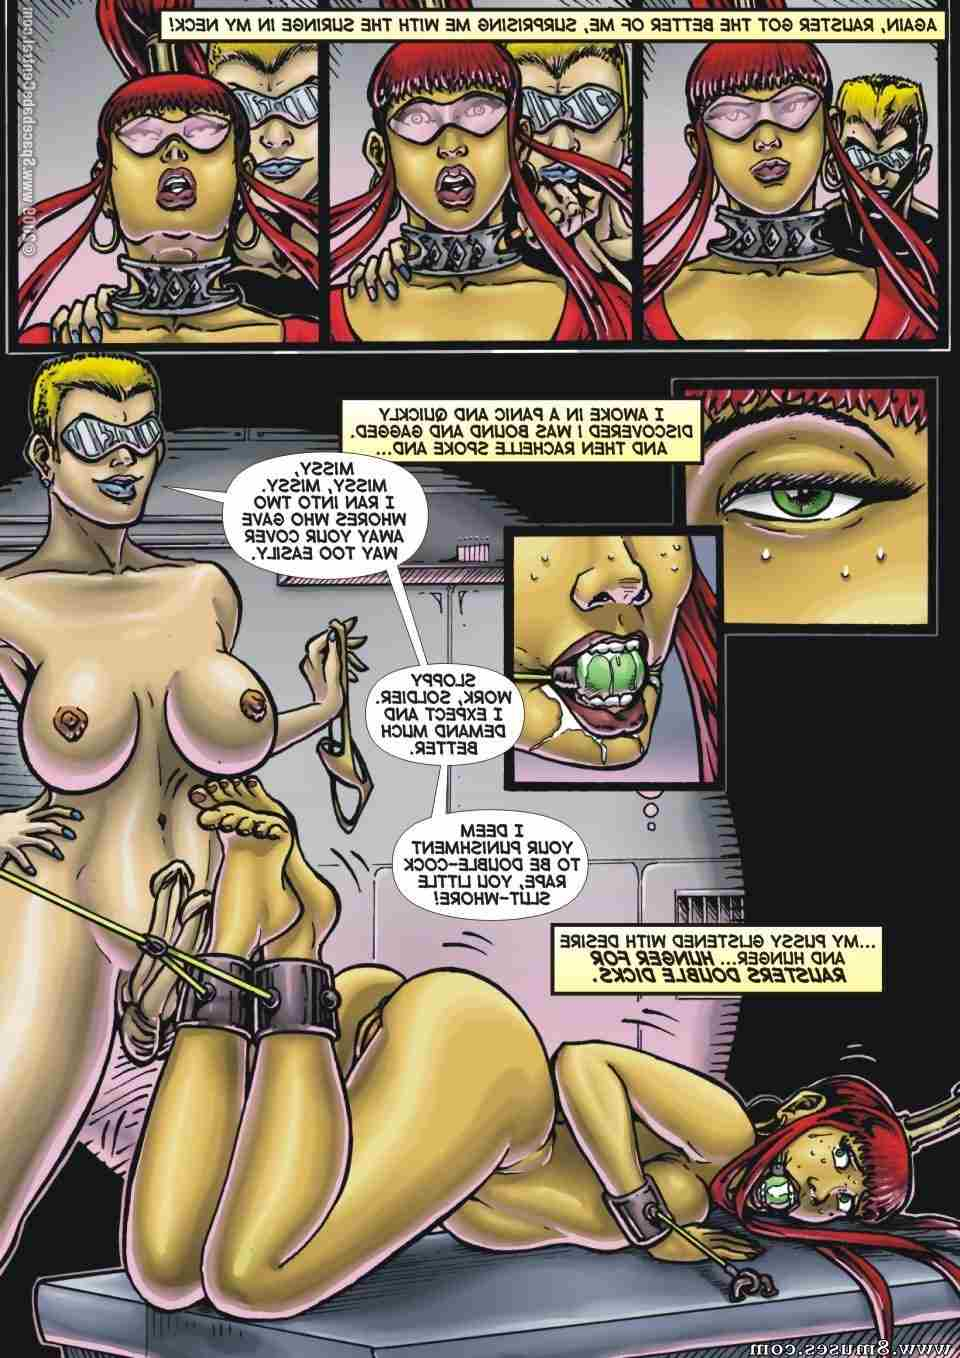 Central-Comics/Space-Babe-Central/Alien-Huntress Alien_Huntress__8muses_-_Sex_and_Porn_Comics_52.jpg